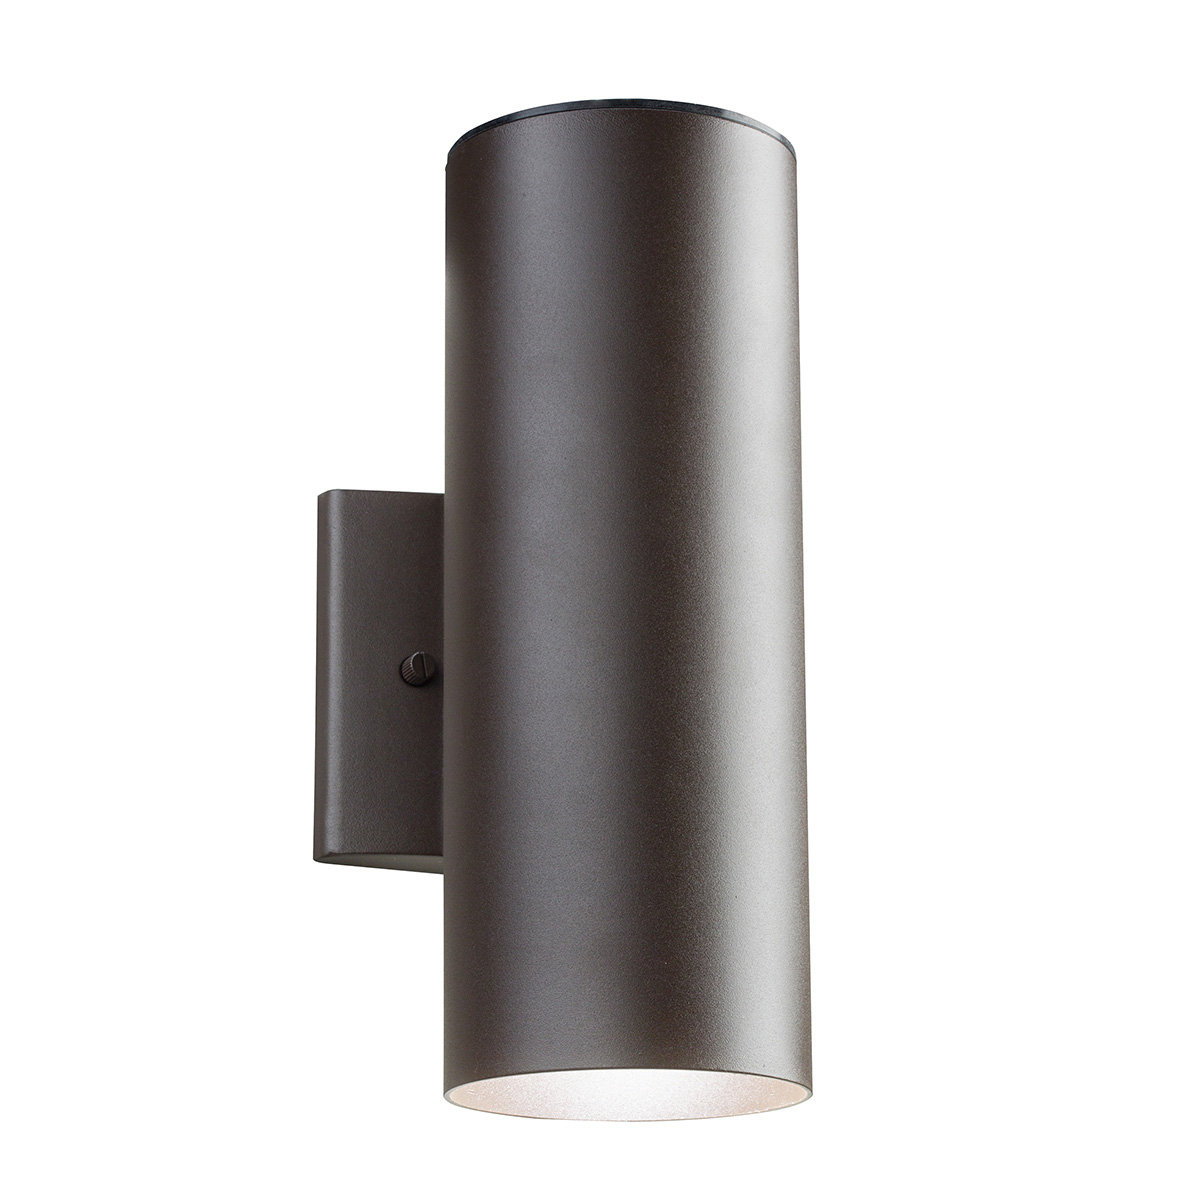 Outdoor led updown wall sconce by kichler 11251azt30 11251 outdoor led updown wall sconce by kichler 11251azt30 aloadofball Images